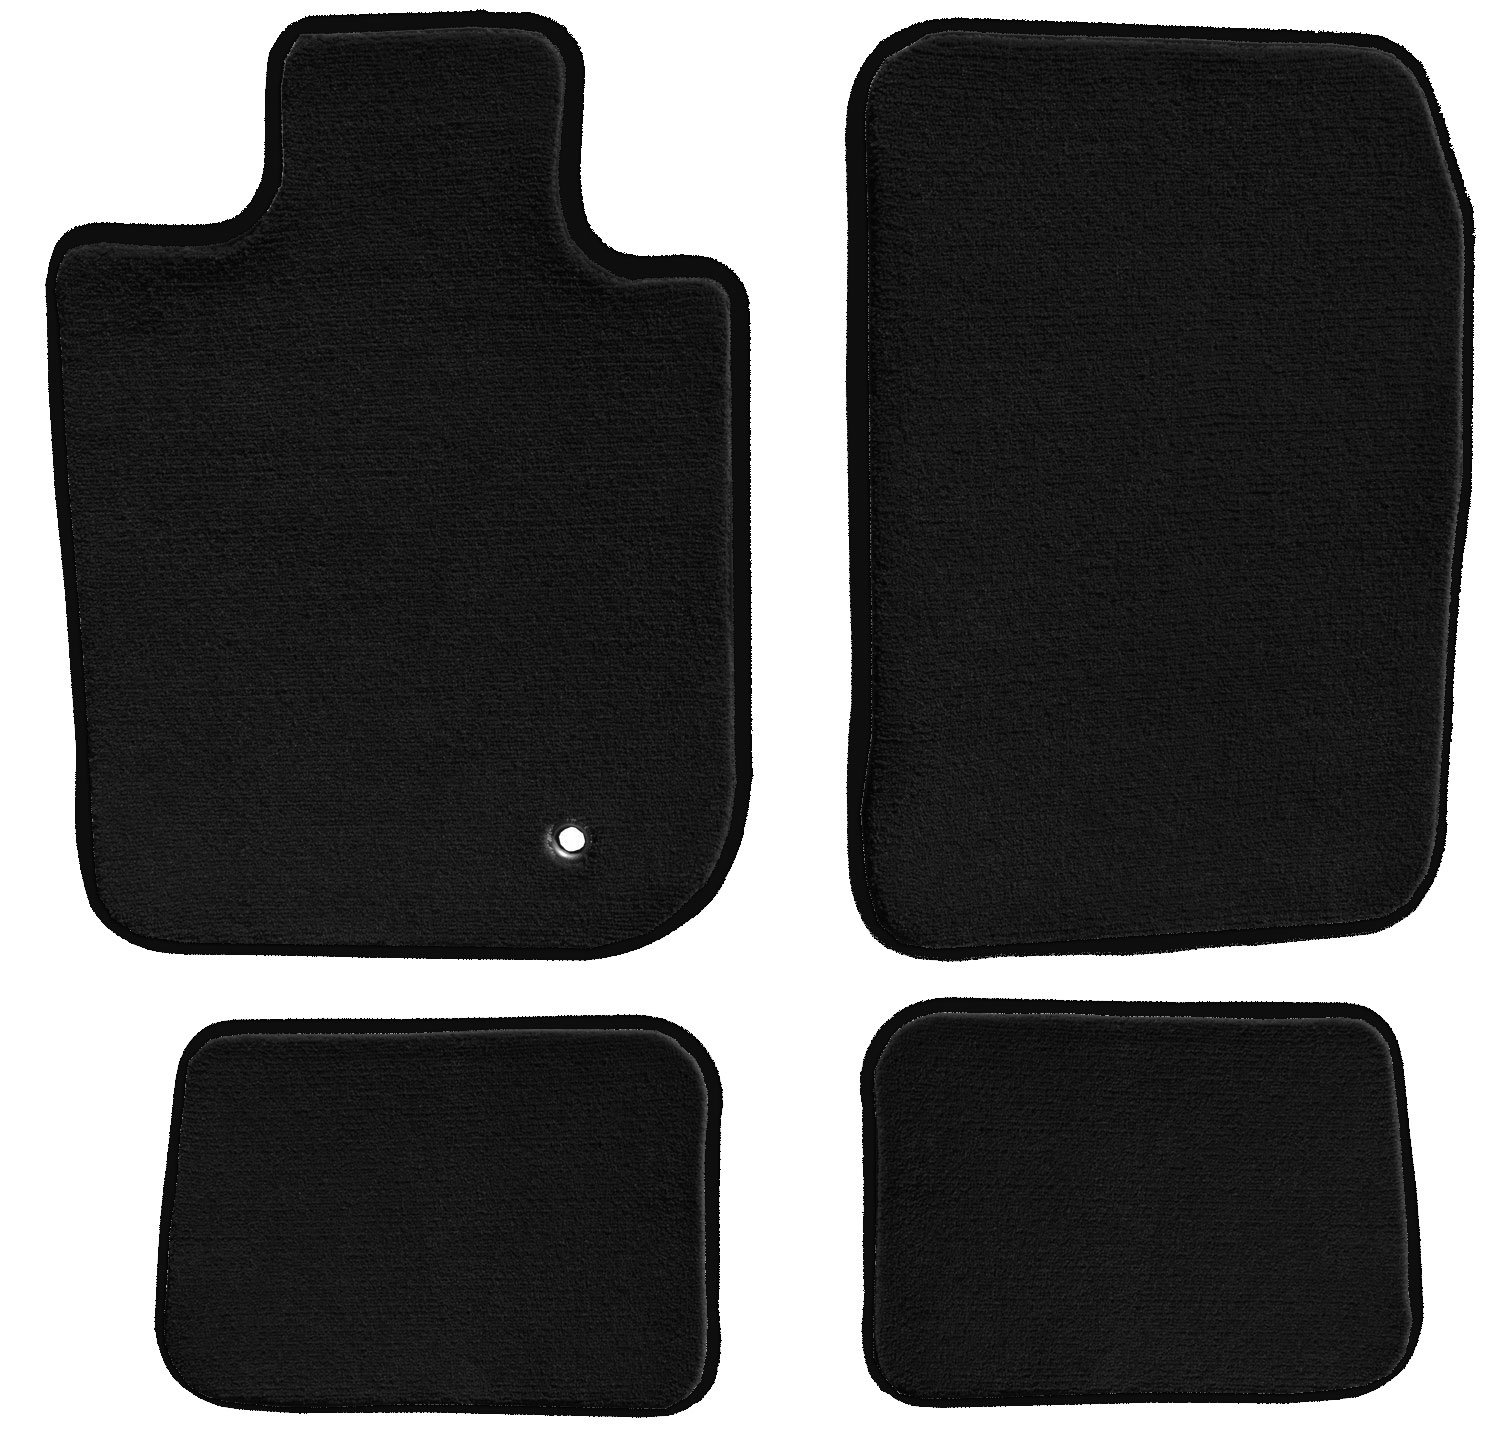 GGBAILEY D60207-S1A-BK-LP Custom Fit Car Mats for 2017 2018 2019 Hyundai Ioniq Black Loop Driver Passenger /& Rear Floor